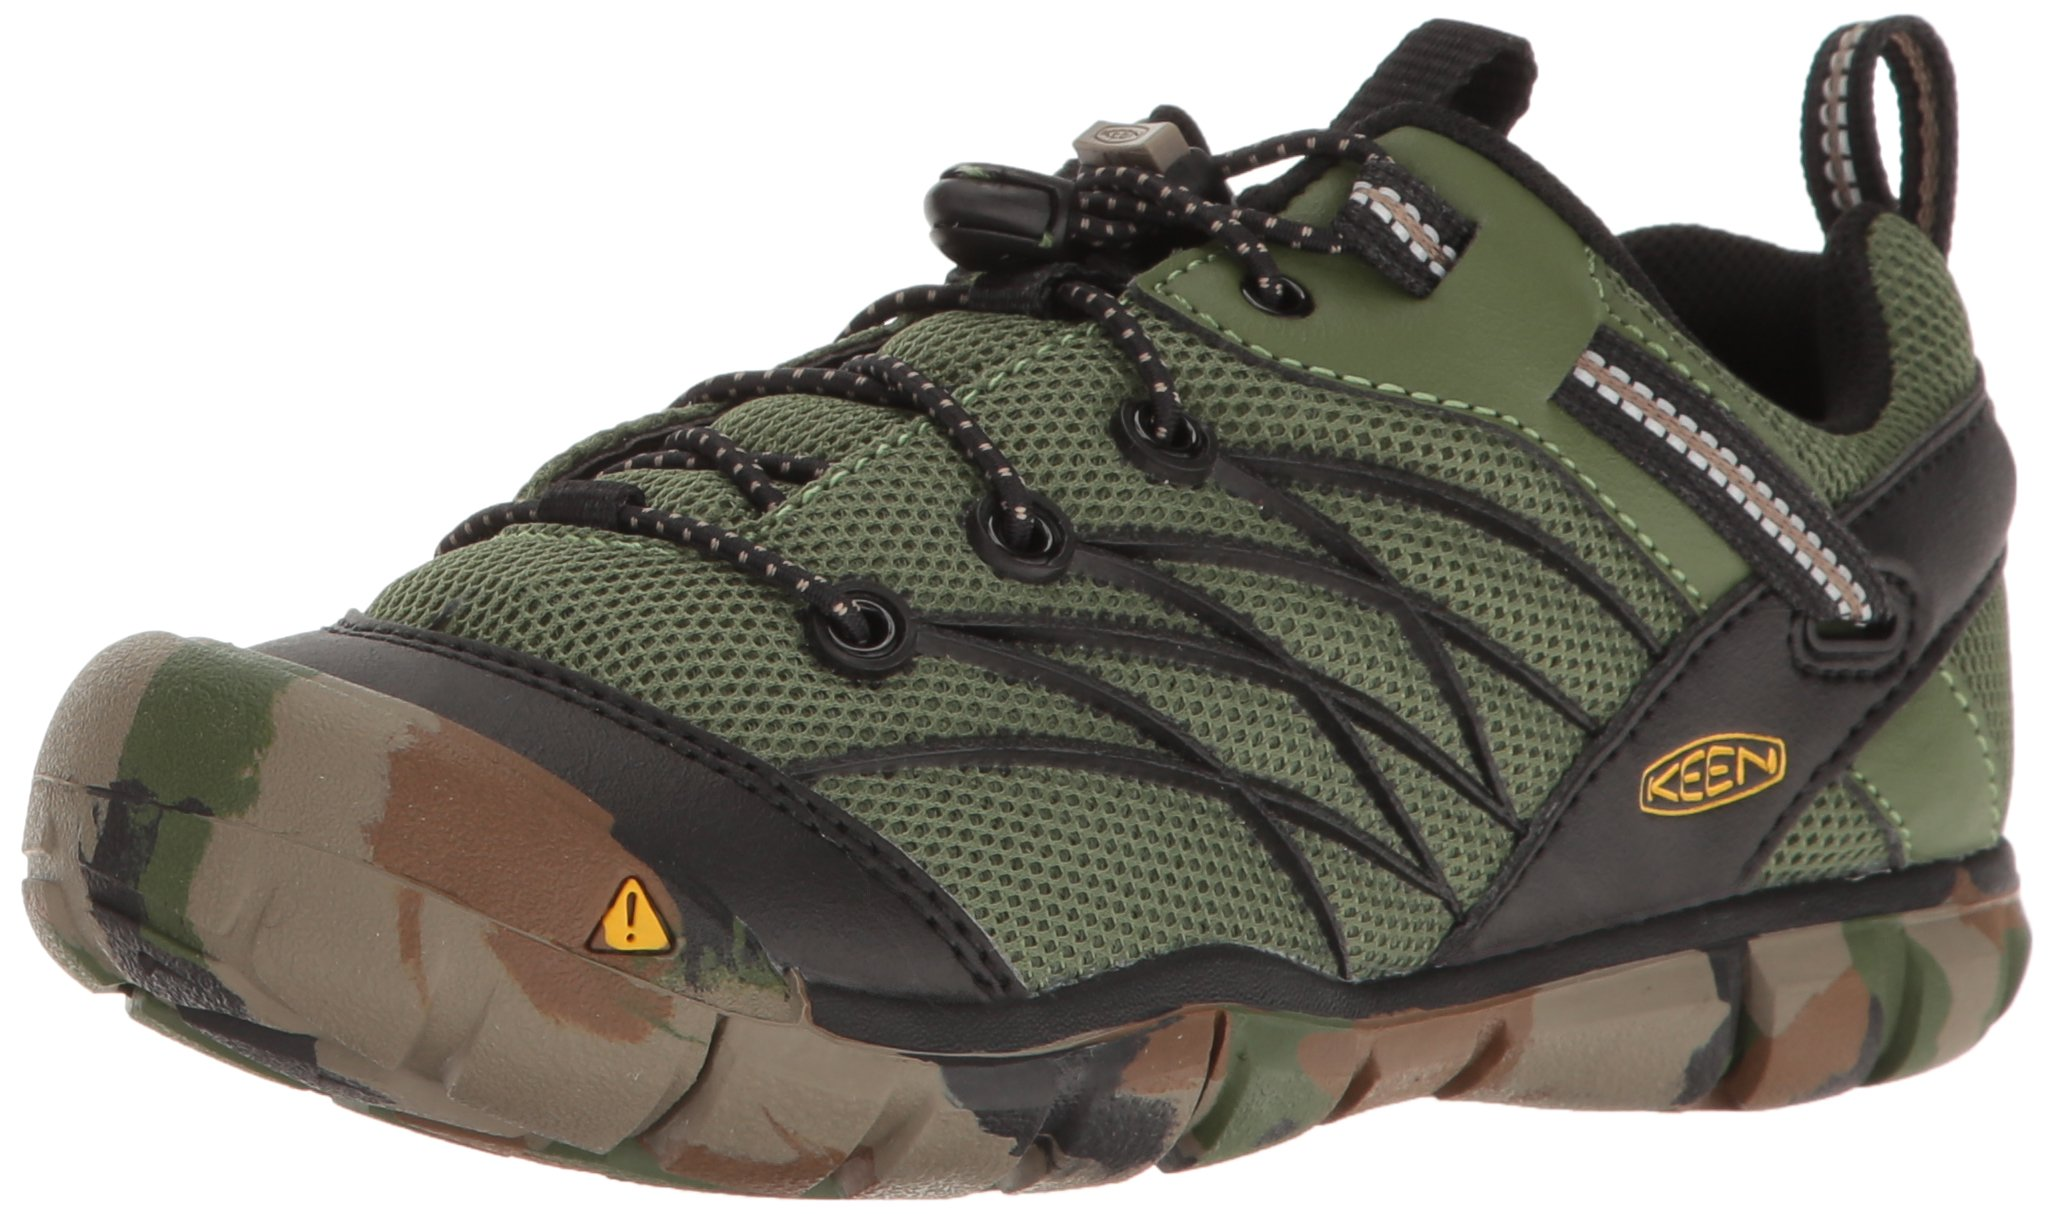 KEEN Kids' Chandler CNX-C Sneaker, Crushed Bronze/Green, 2 M US Little Kid by KEEN